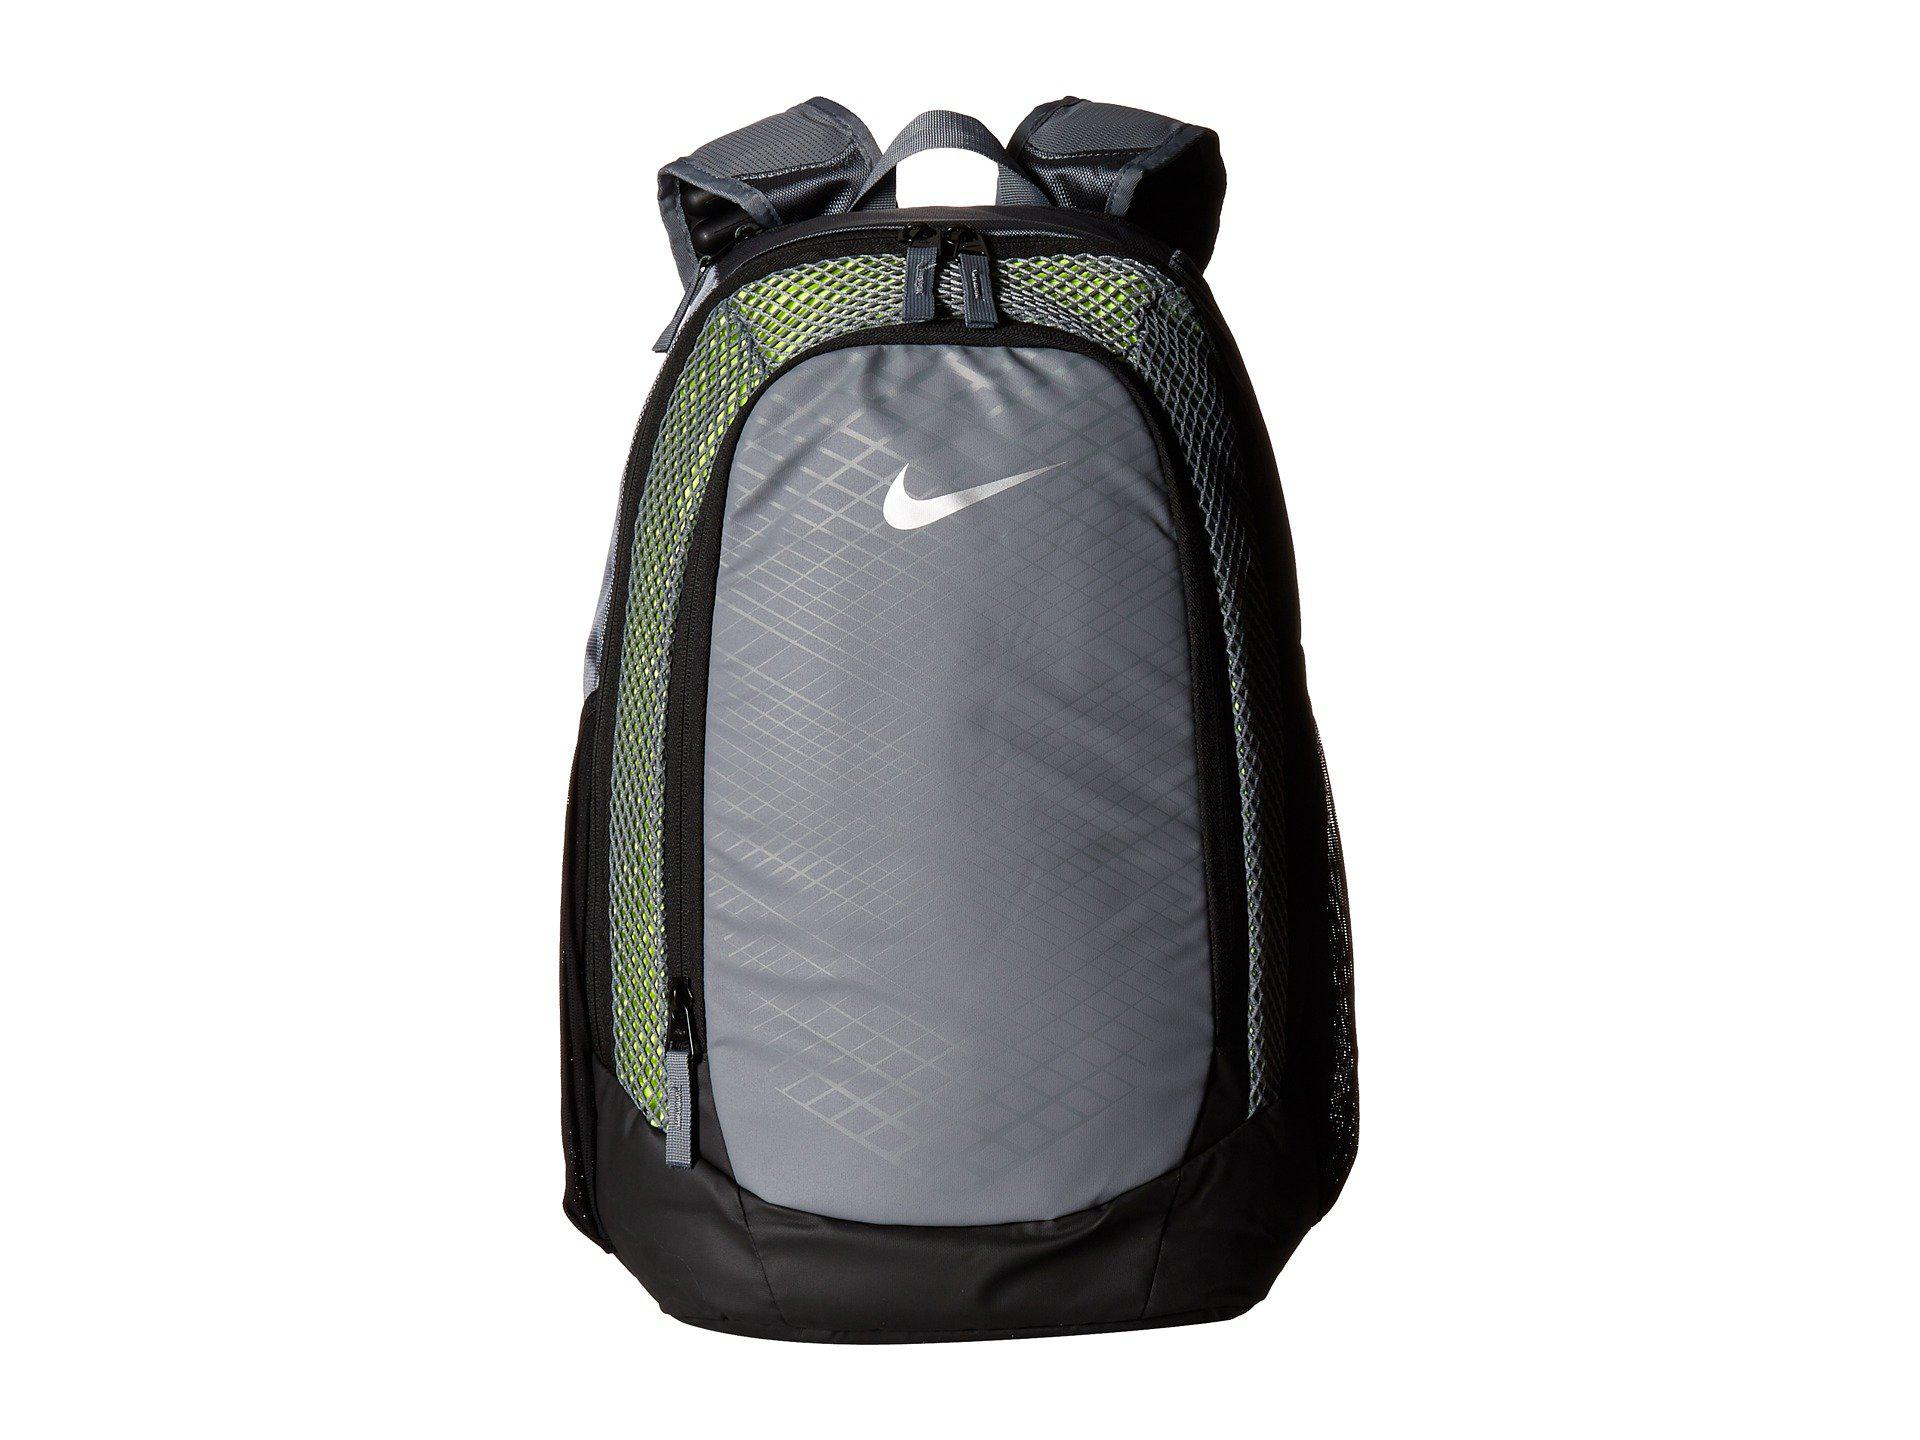 c102fc99306a Lyst - Nike Vapor Speed Training Backpack (black volt metallic ...